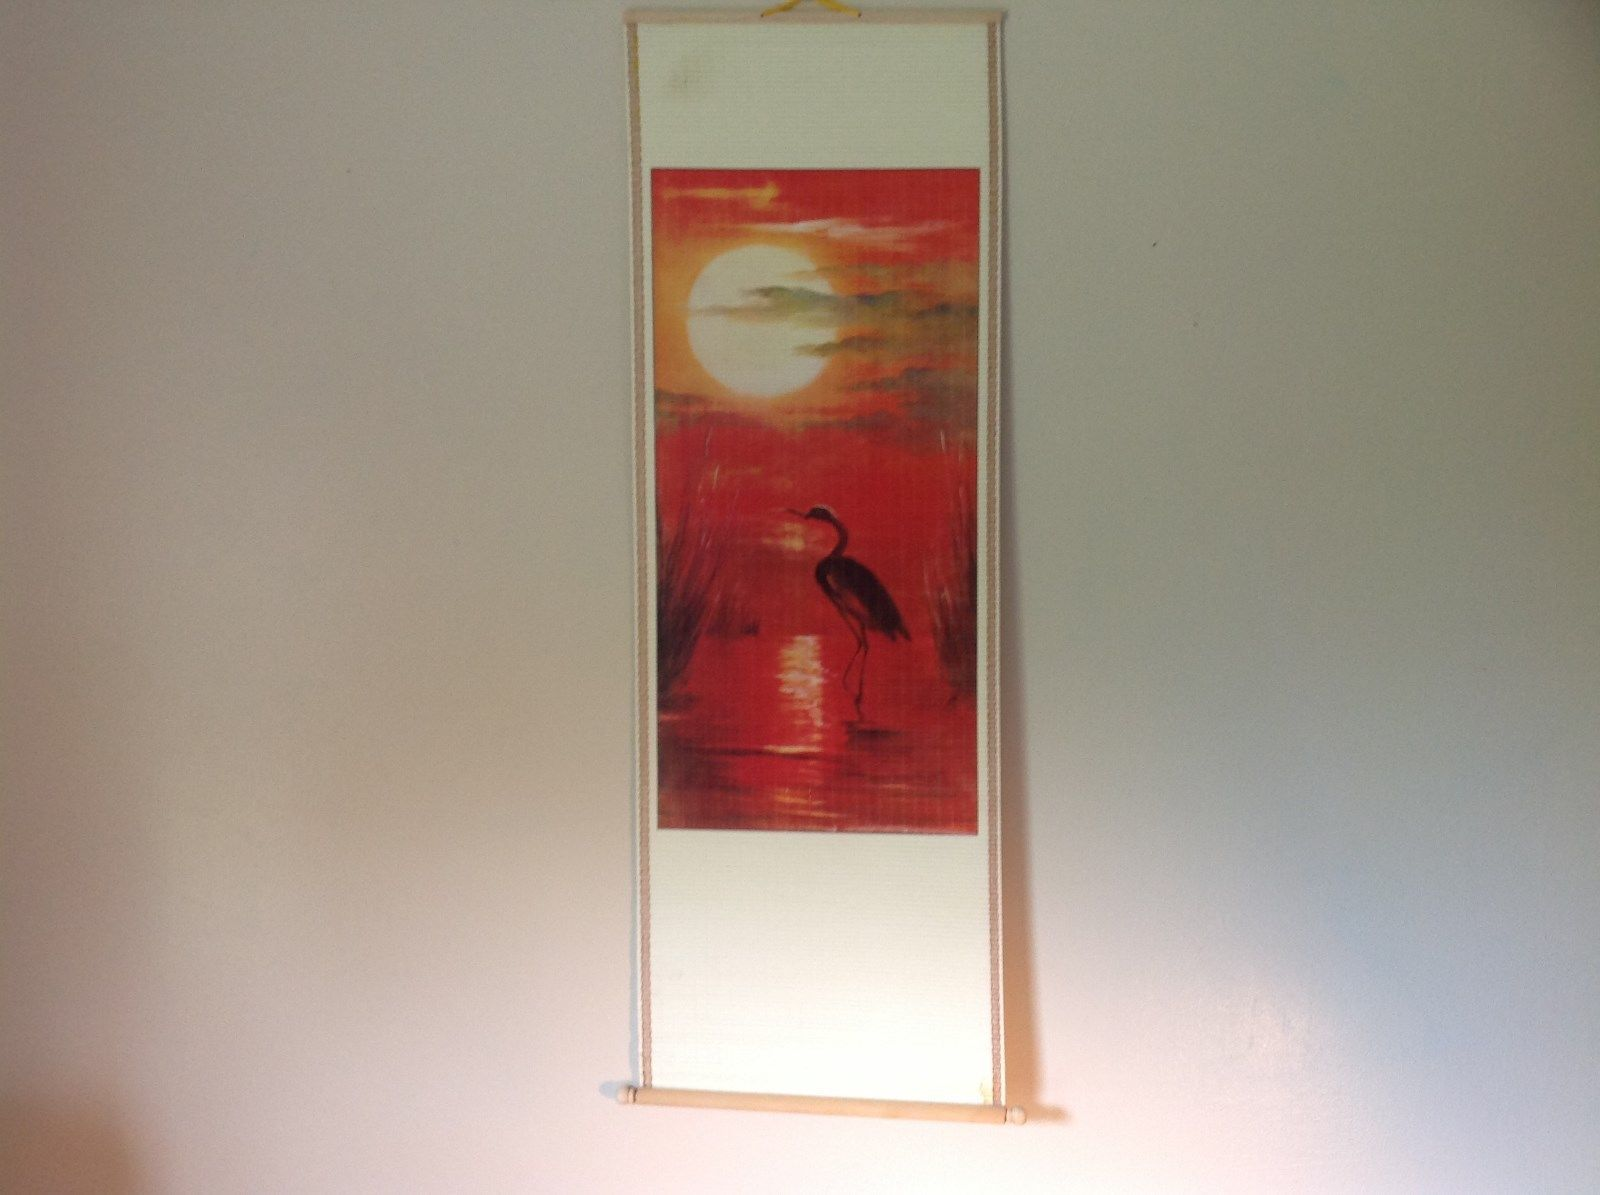 Chinese Traditional Wall Scroll Crane and Red Sunset 100 Percent Wood Pulp